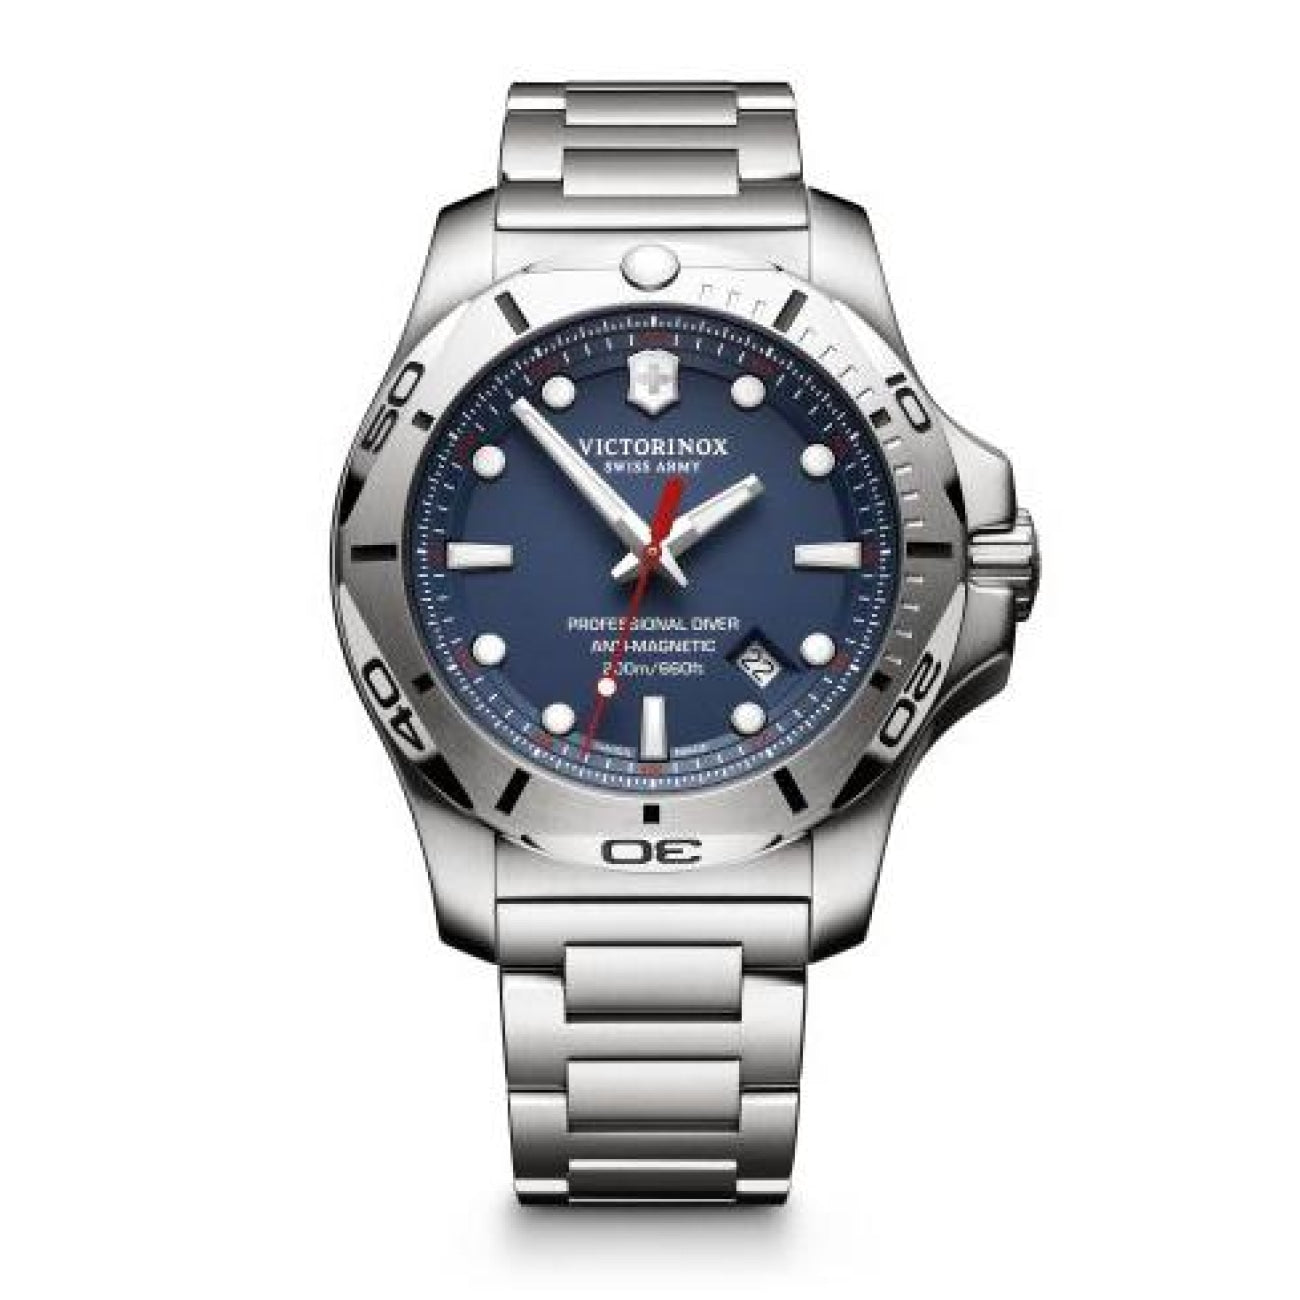 Swiss Army Watches - I.N.O.X. Professional Diver | Manfredi Jewels